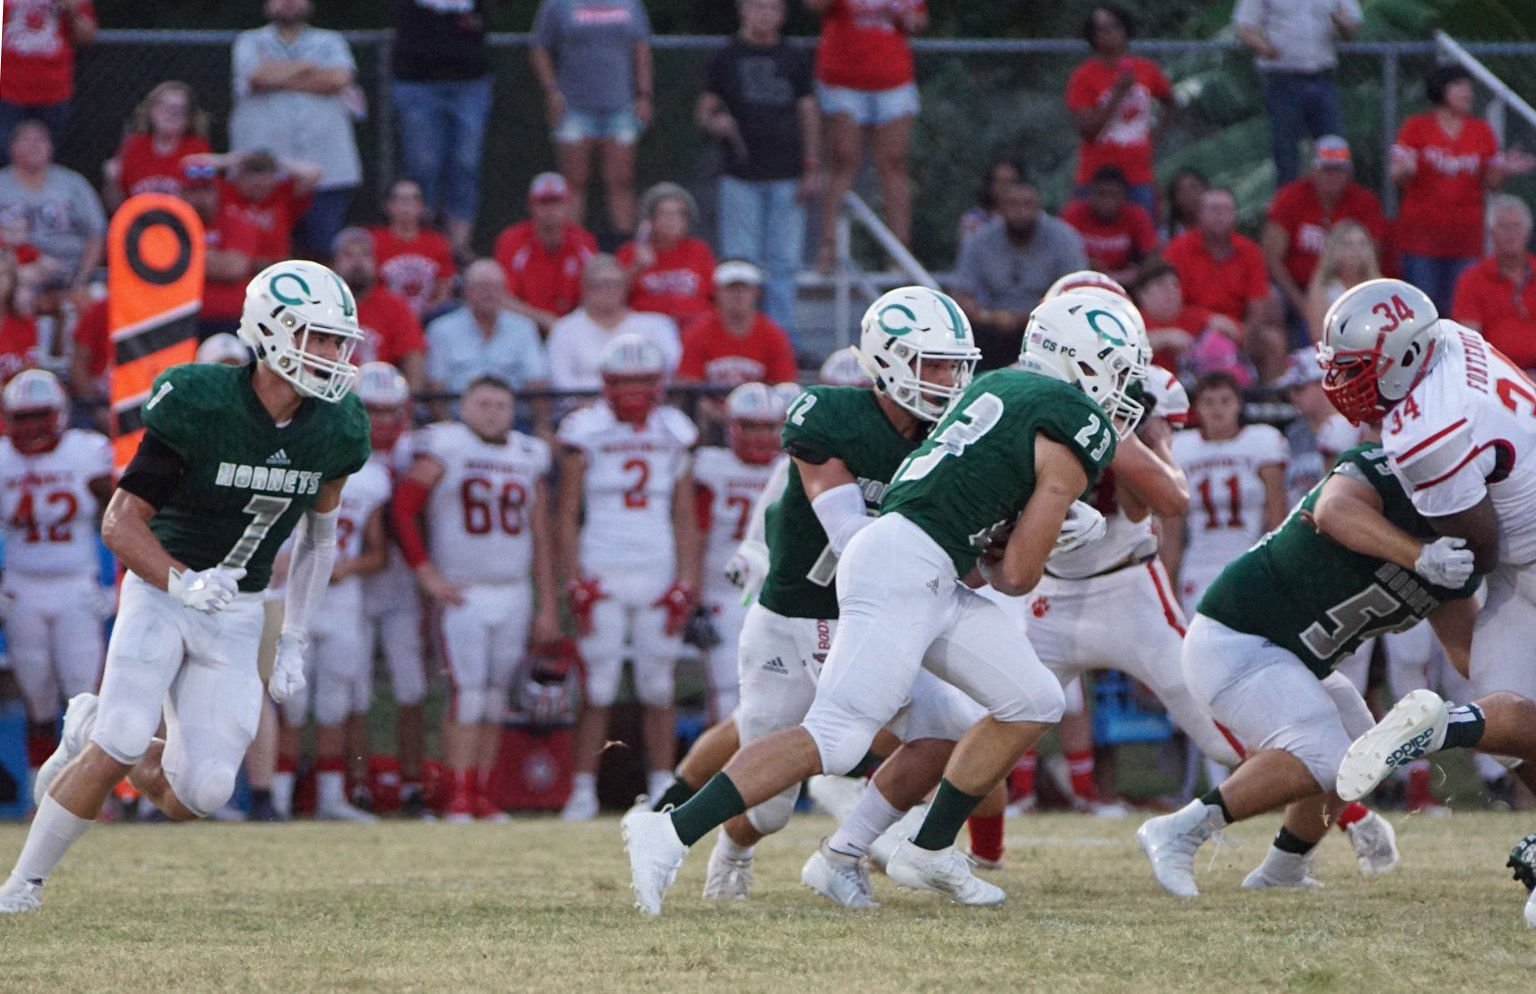 Catholic-Pointe Coupee showing huge resiliency in building 5-2 record